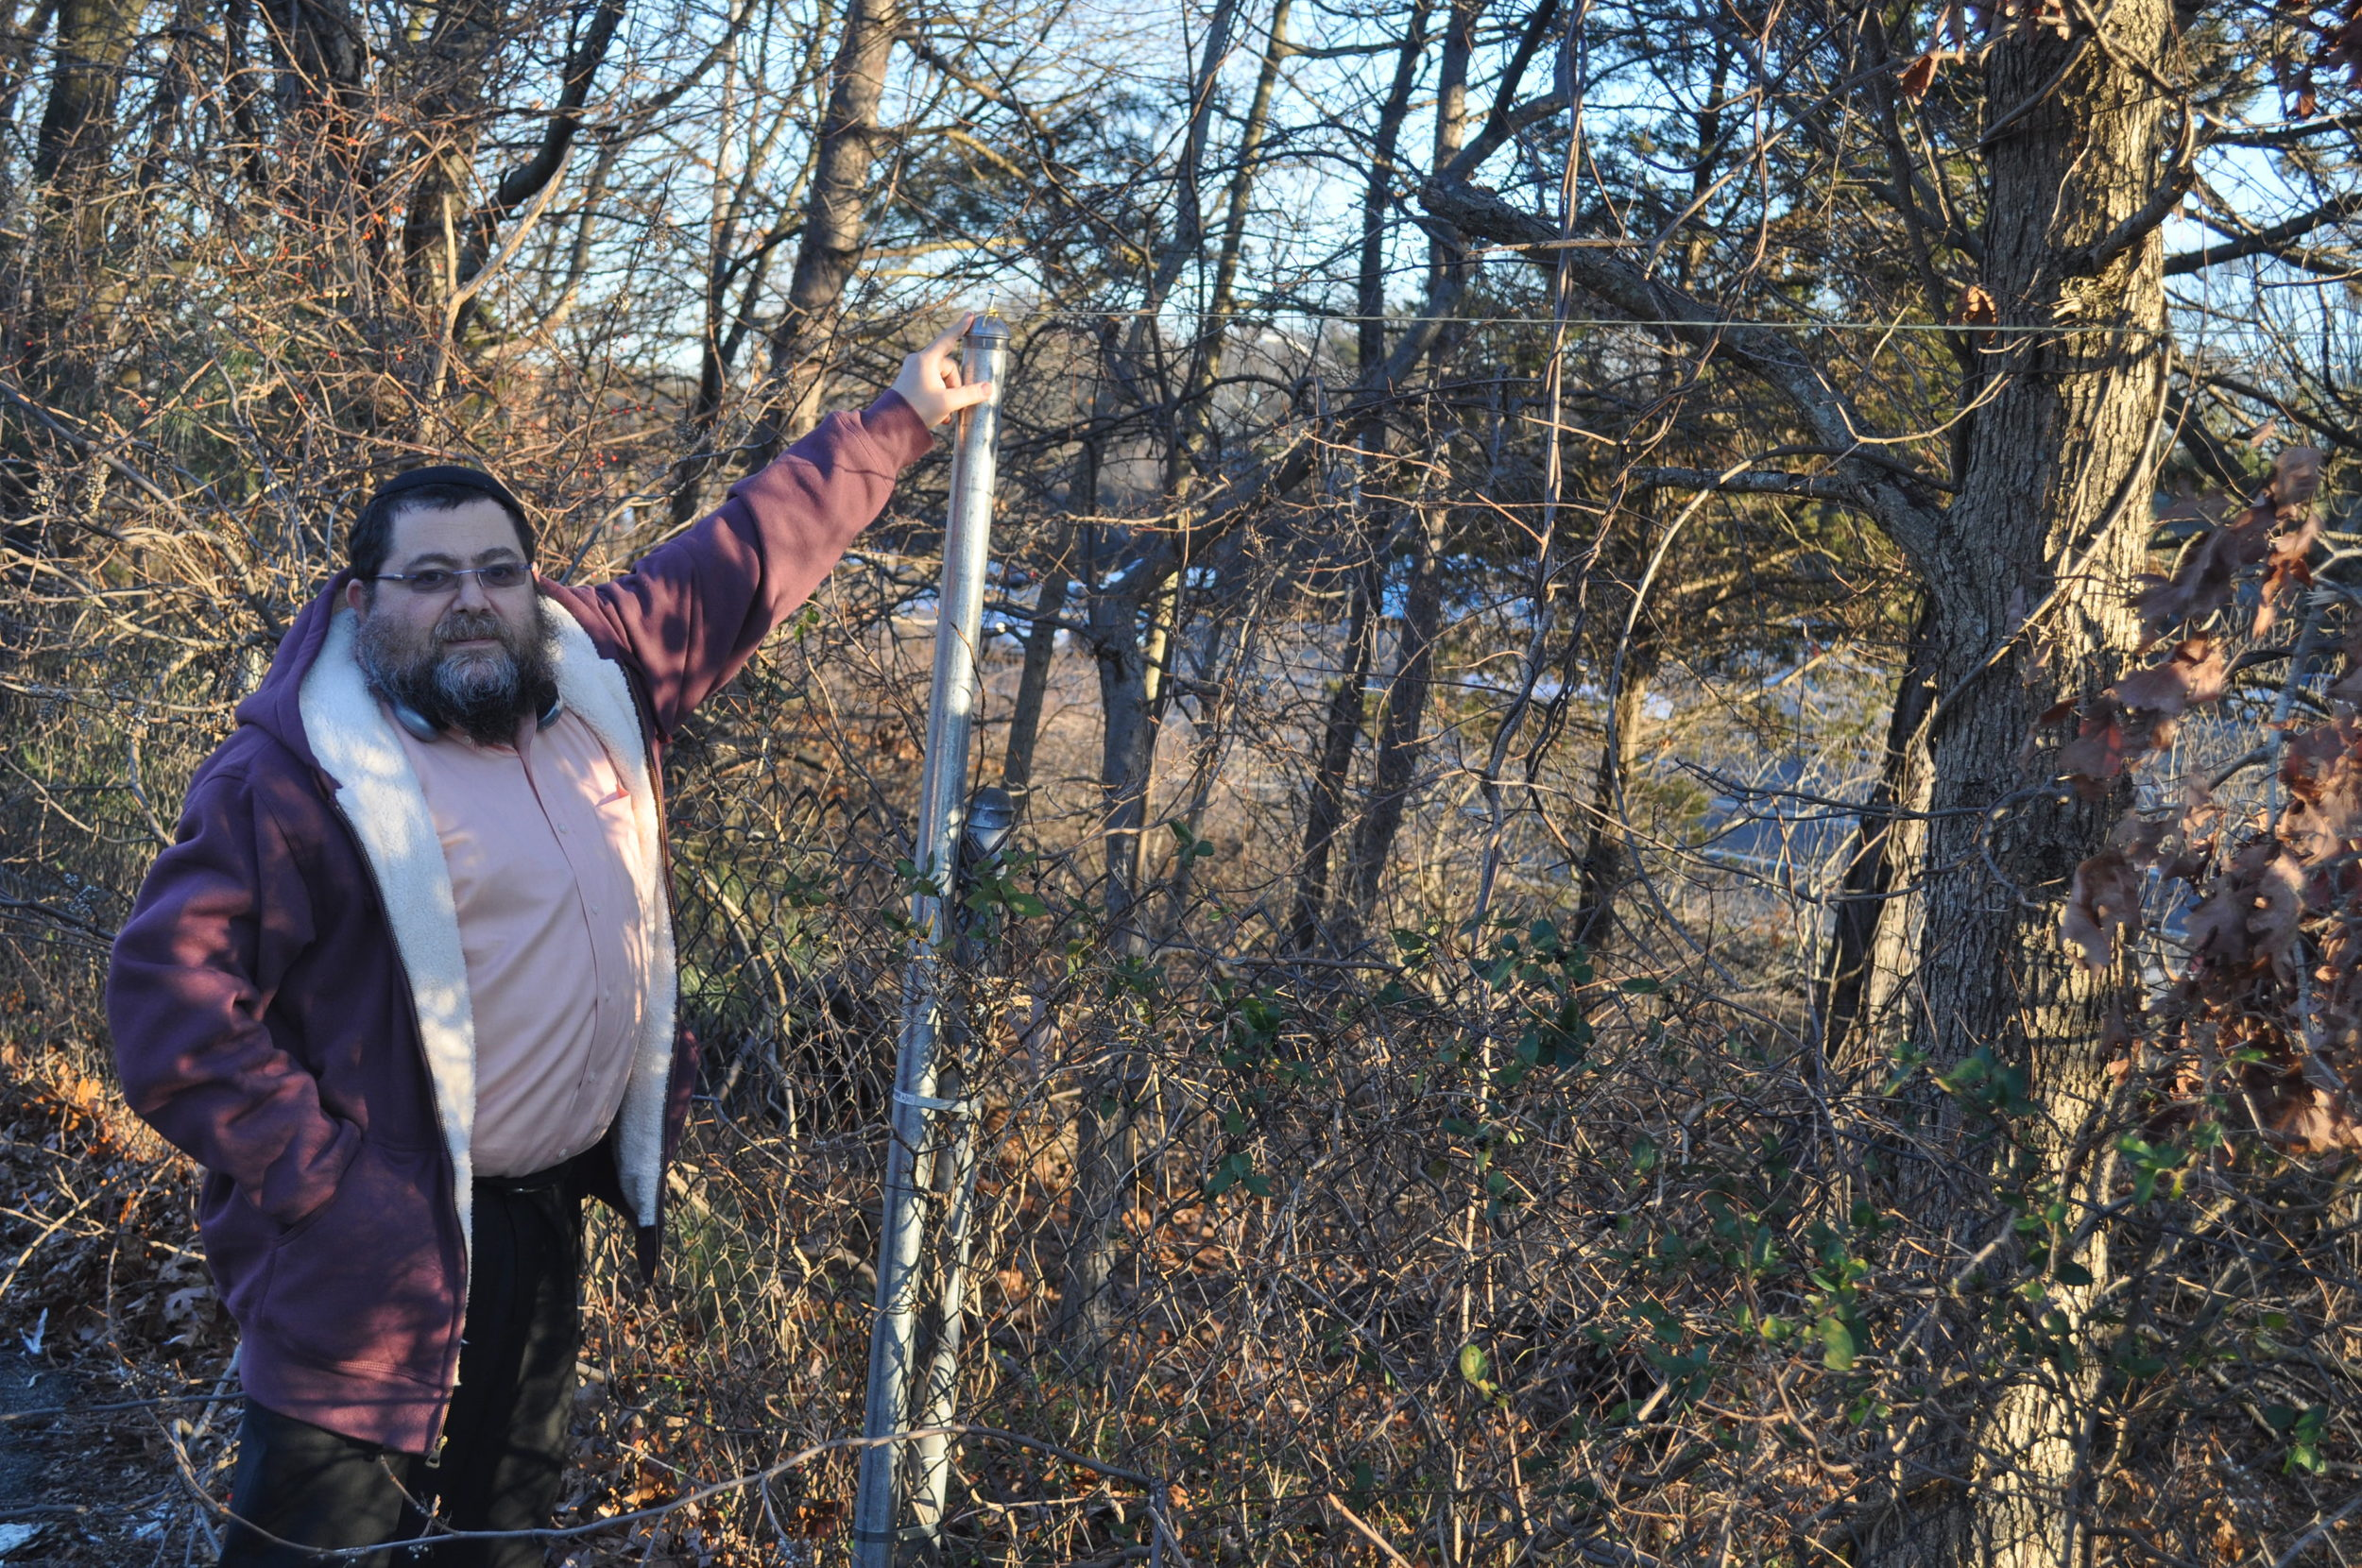 Rabbi Yaakov Saacks points out a portion of the newly constituted eruv in Dix Hills completed by stringing fishing wire to complete the unbroken link.